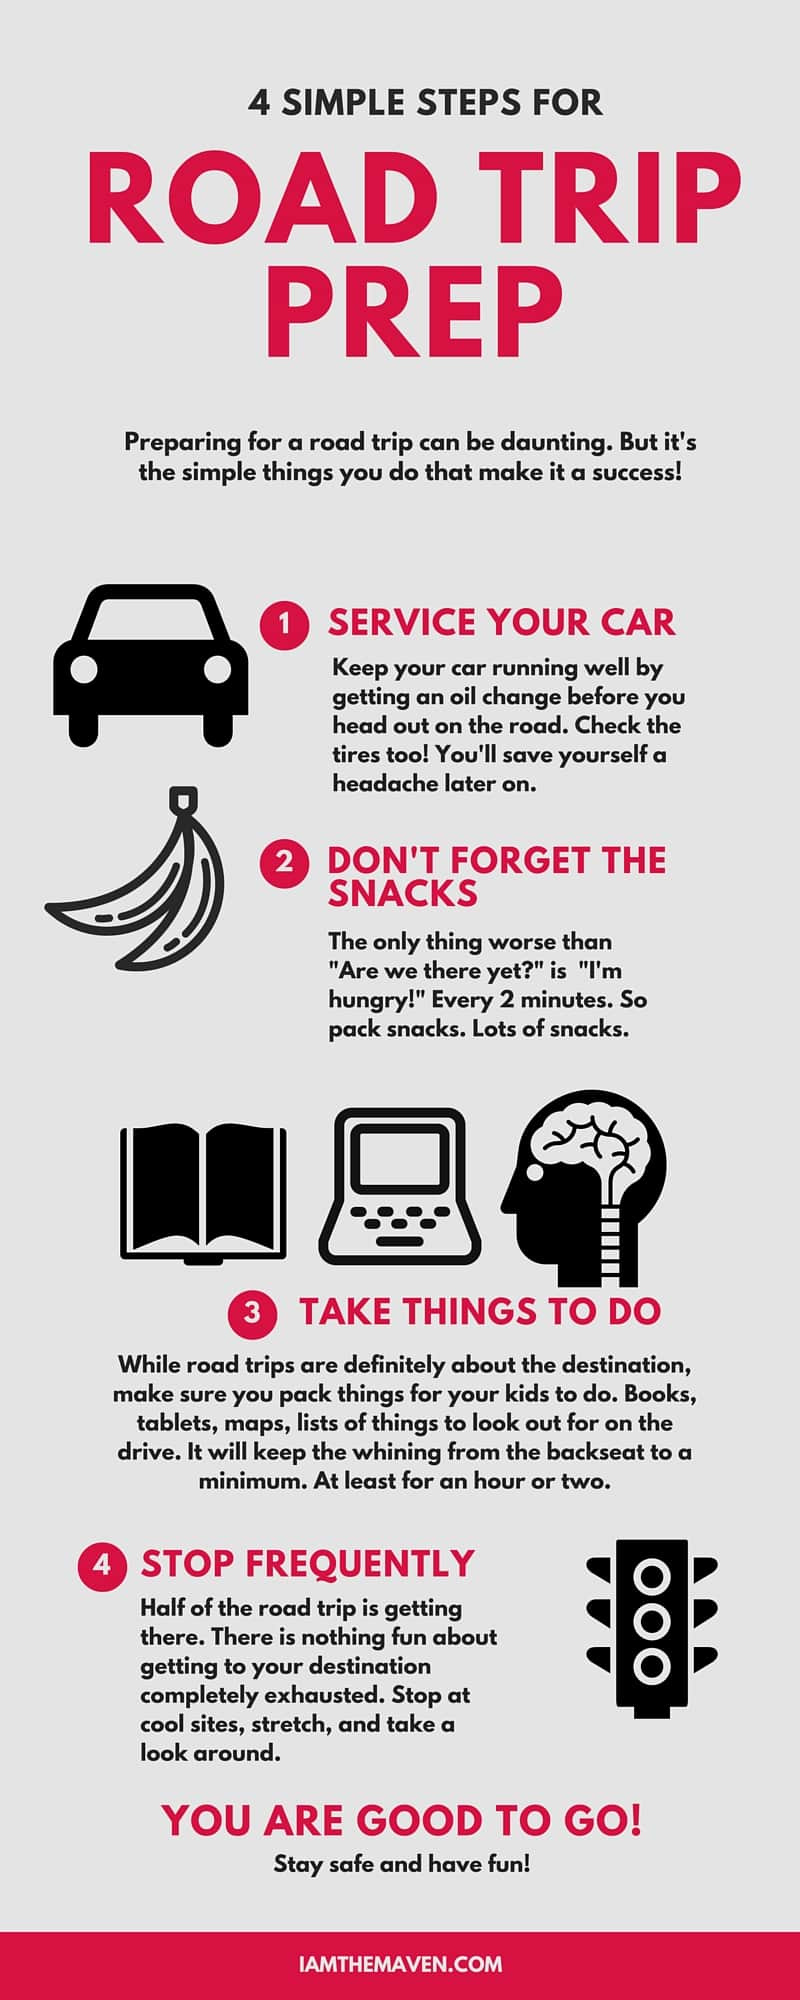 Headed out on a road trip? Here's a quick road trip prep checklist to help you plan!